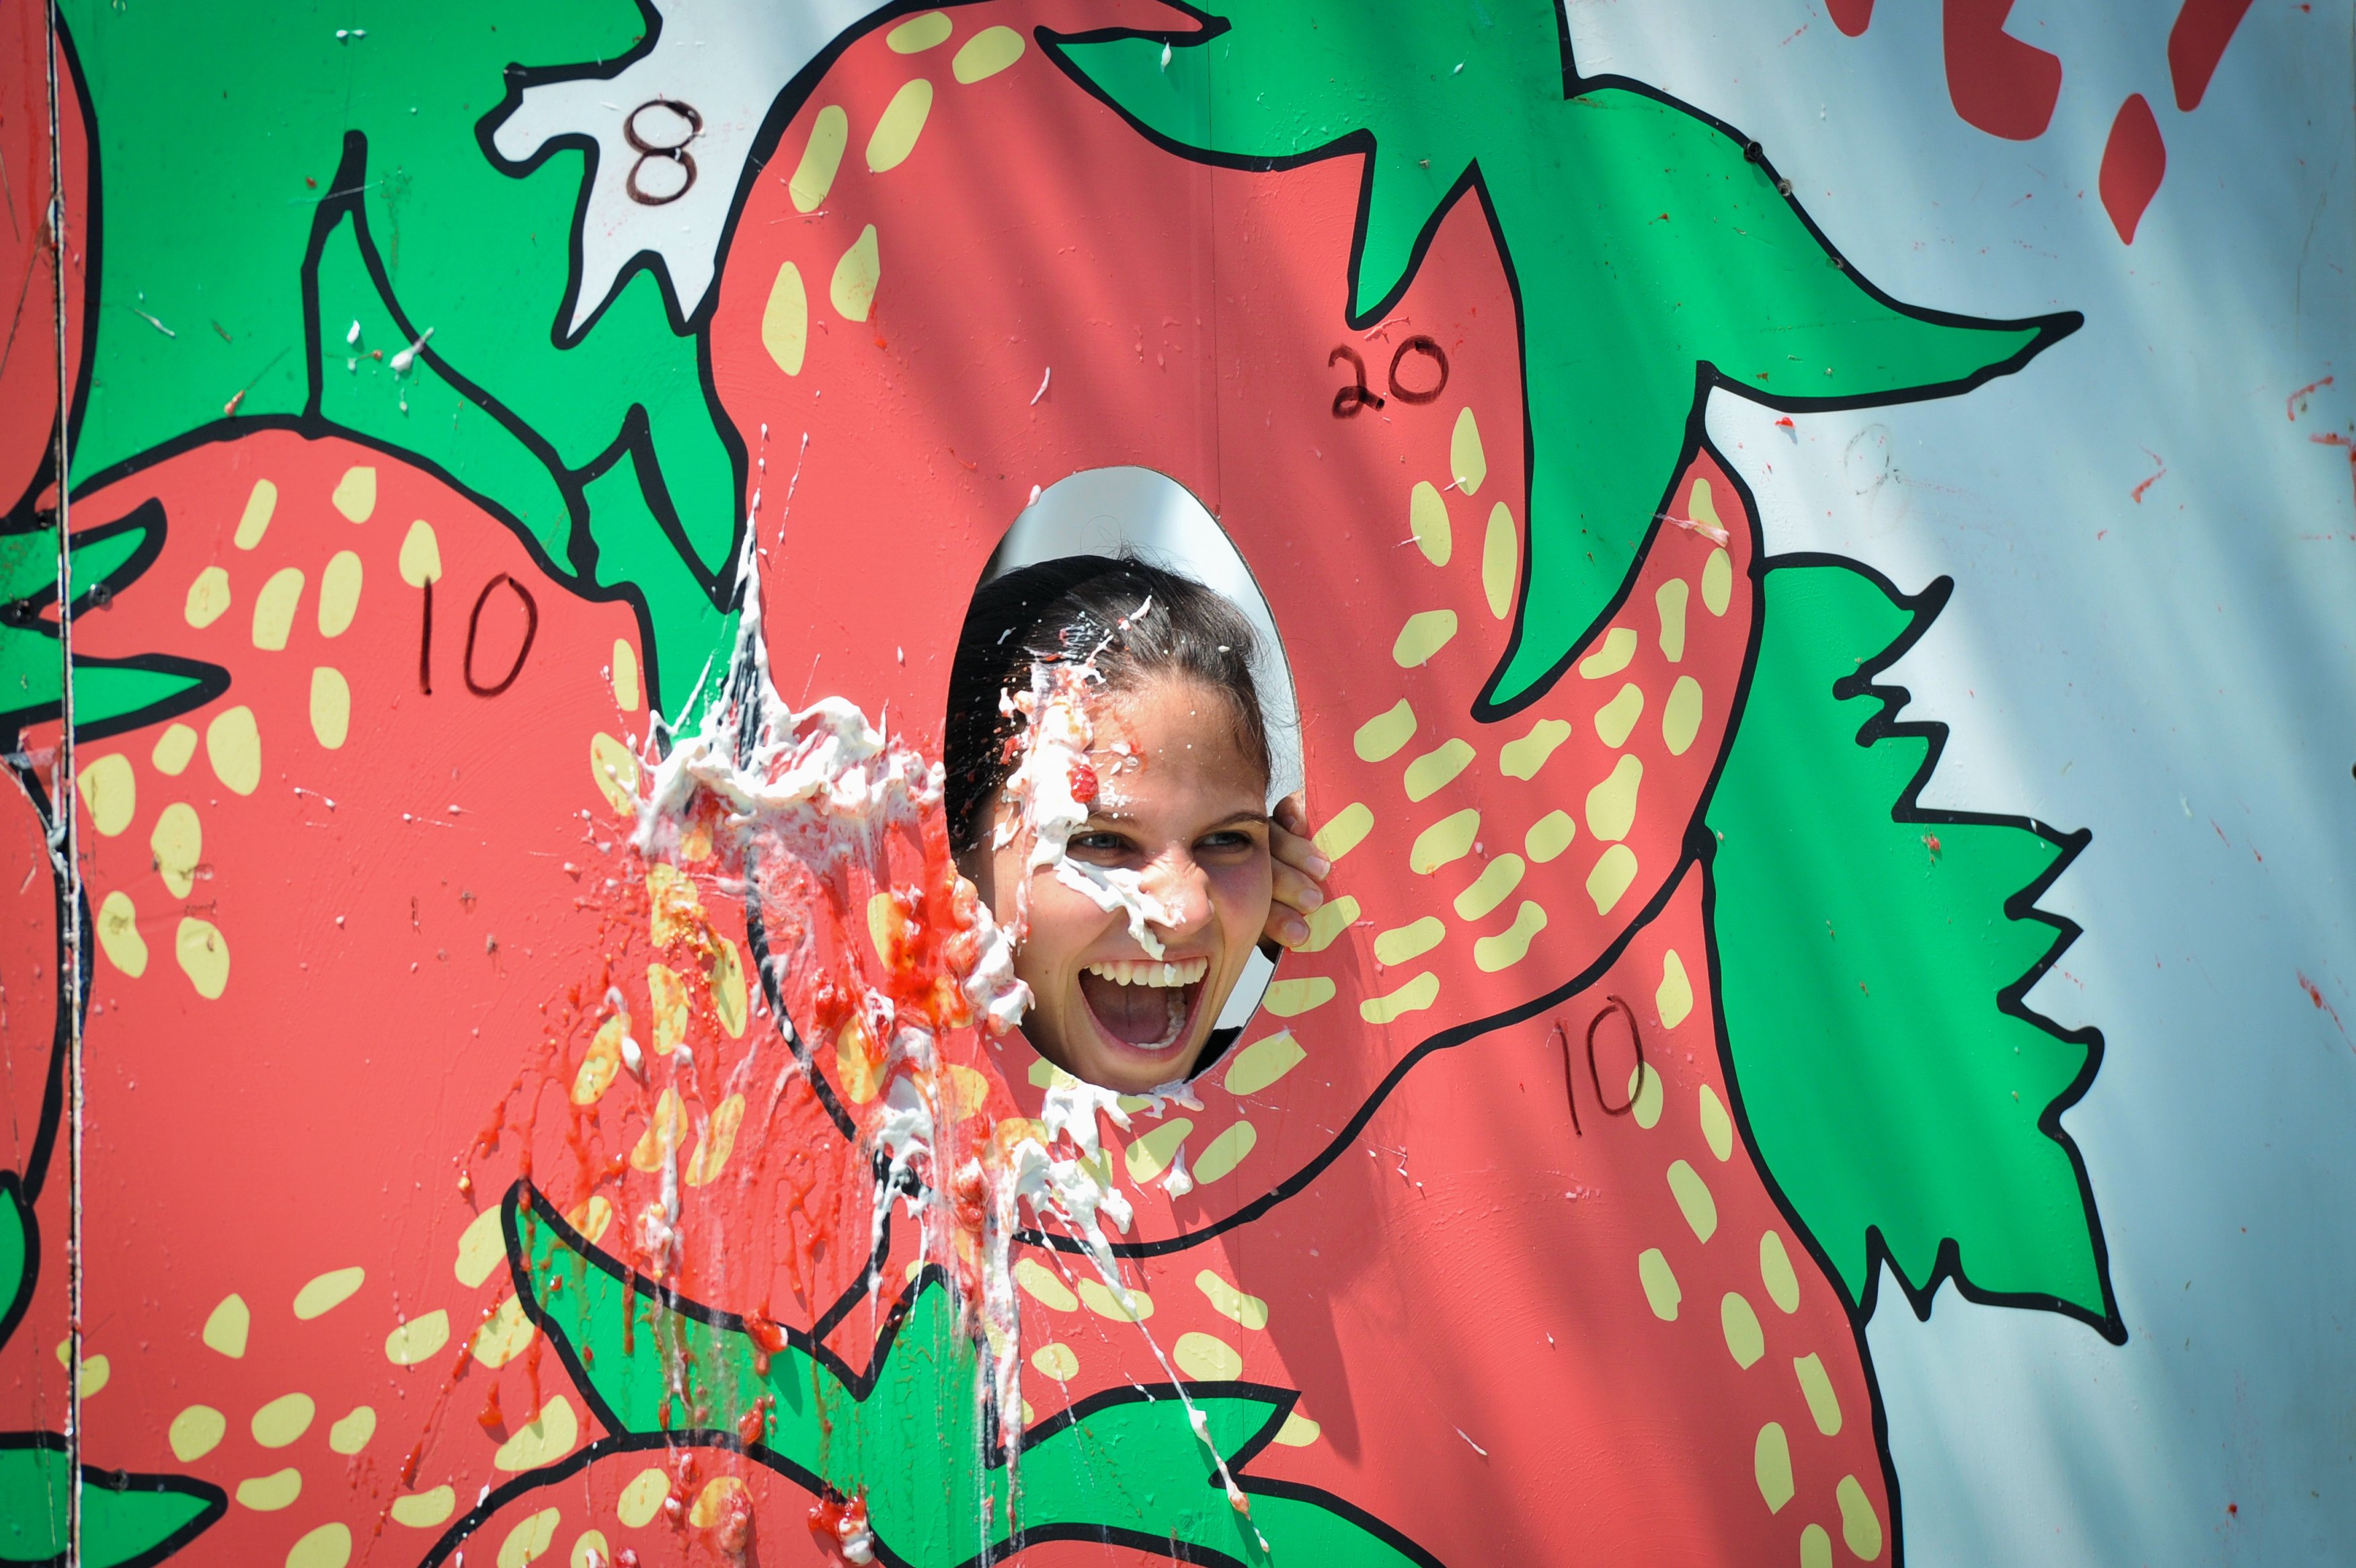 Strawberry Pie throwing contest at the California Strawberry Festival